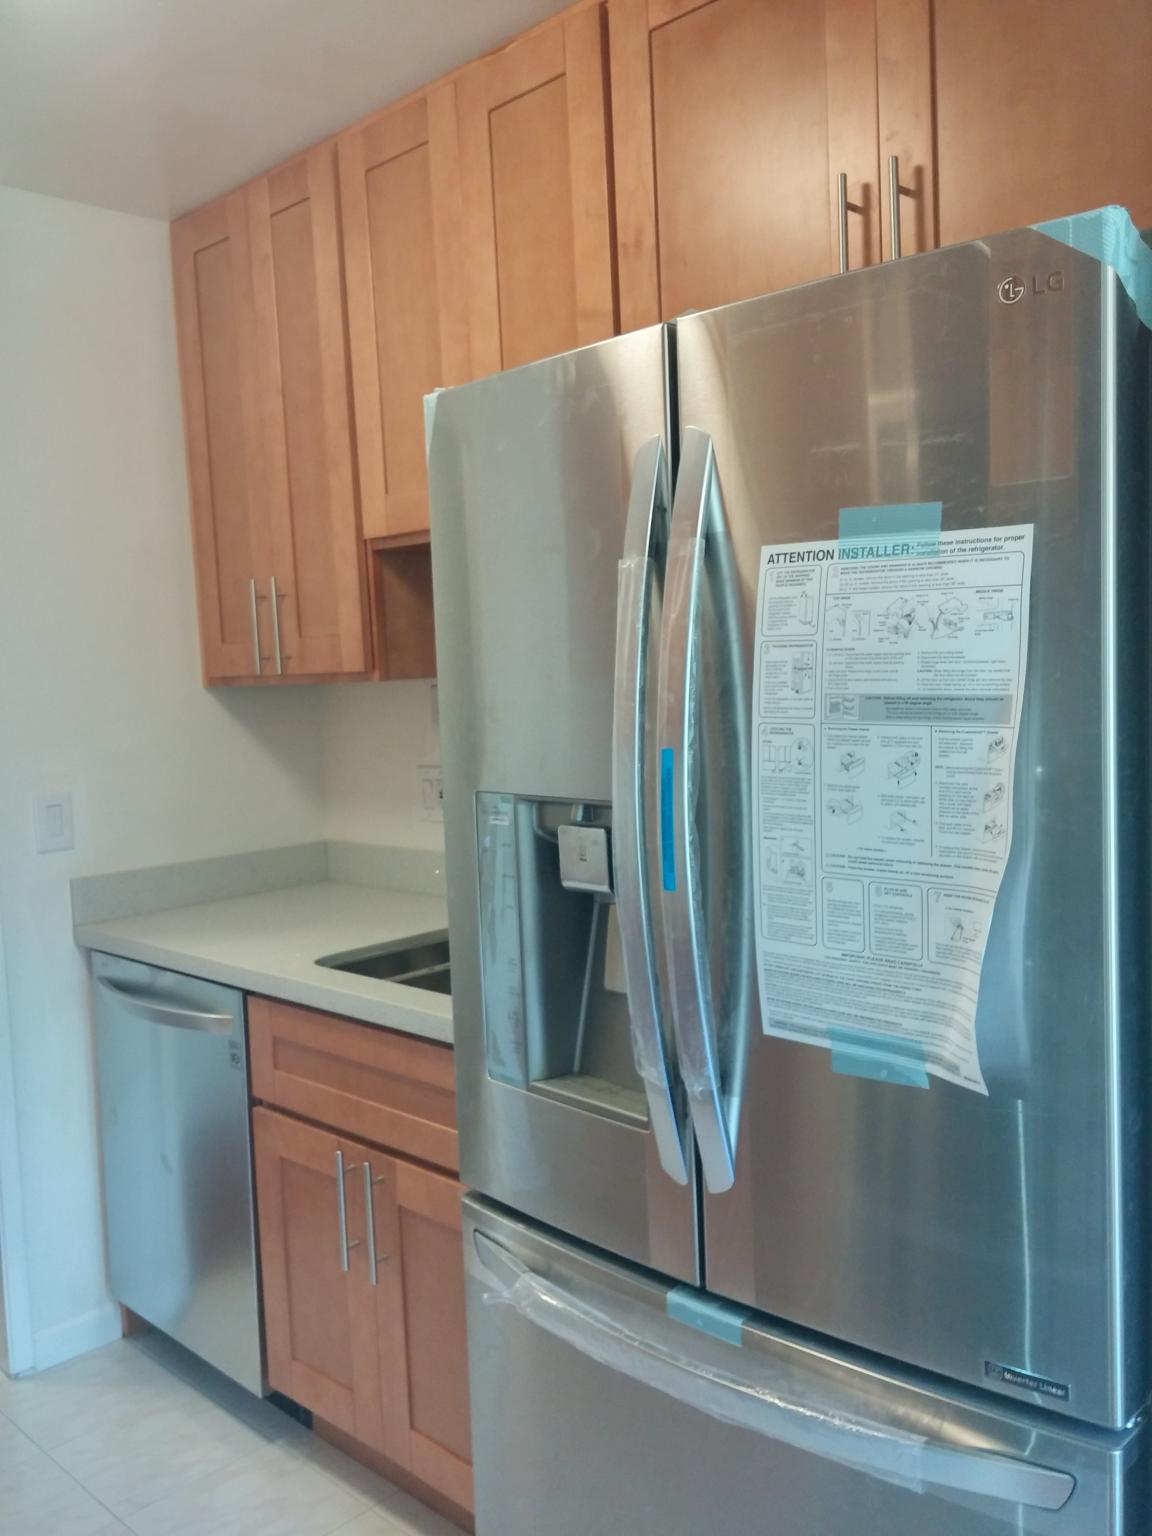 4 Admiral Dr #B329 For Rent - Emeryville, CA | Trulia